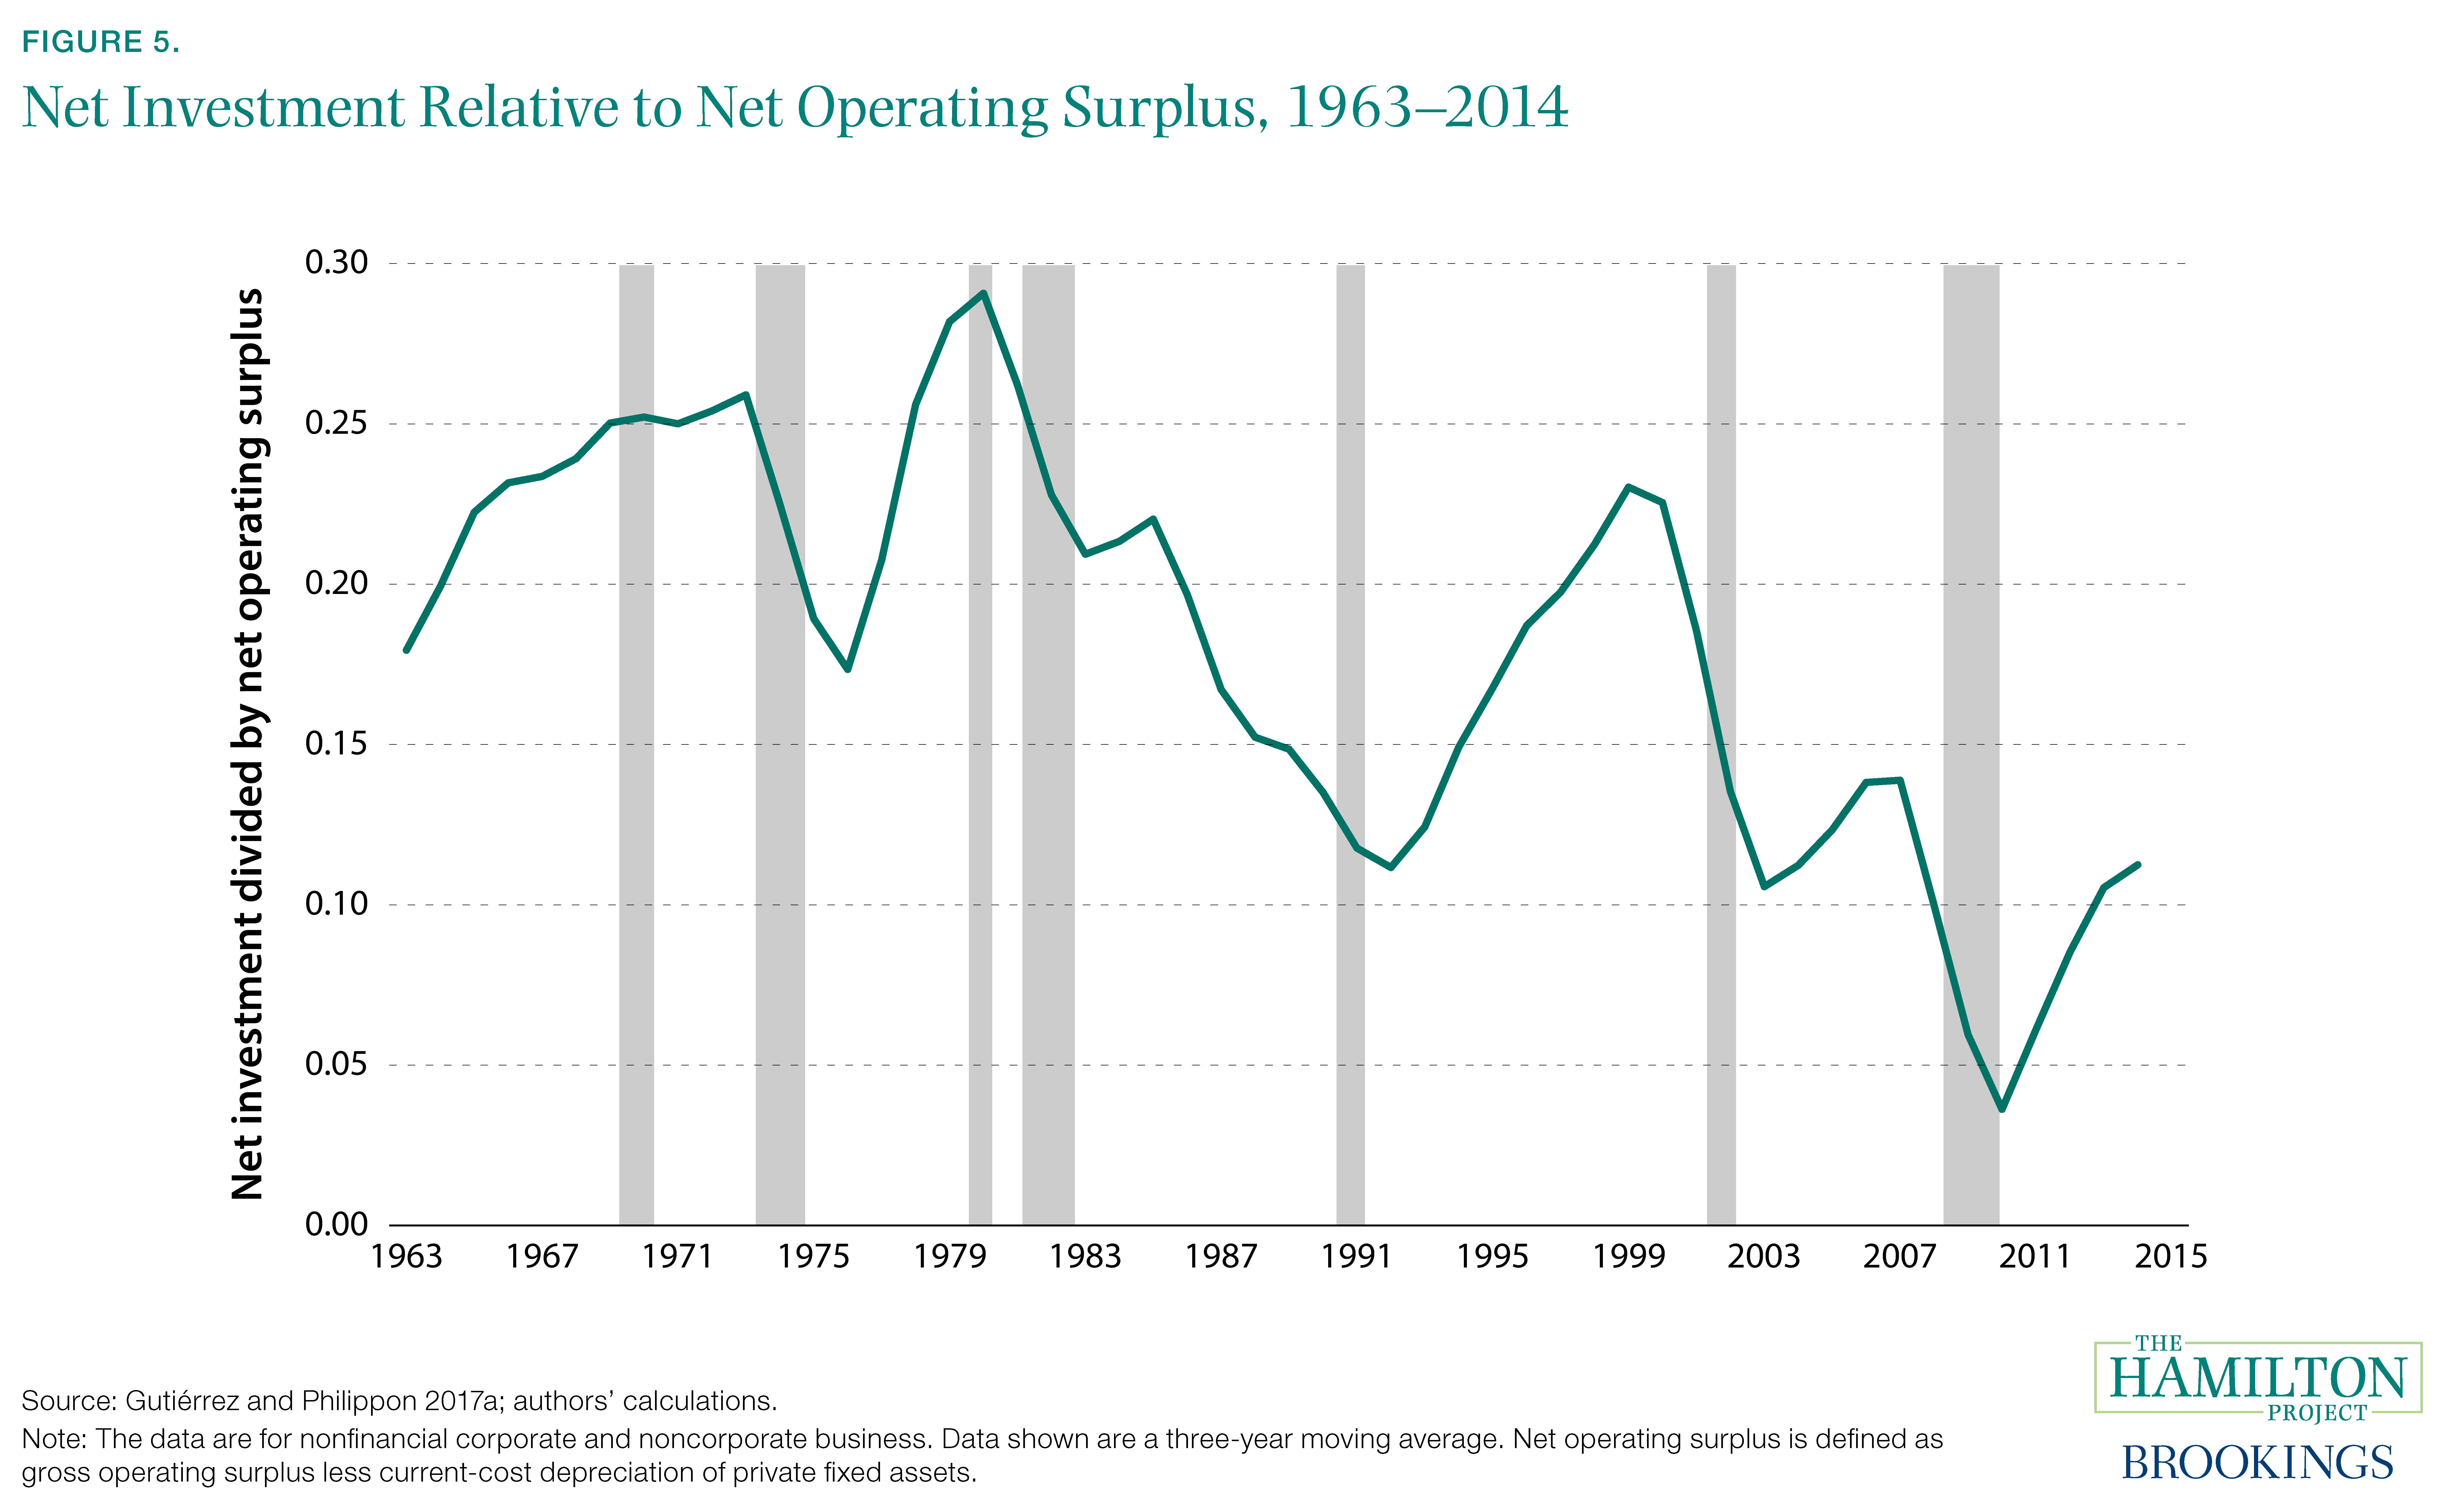 Figure 5. Net Investment Relative to Net Operating Surplus, 1963–2014